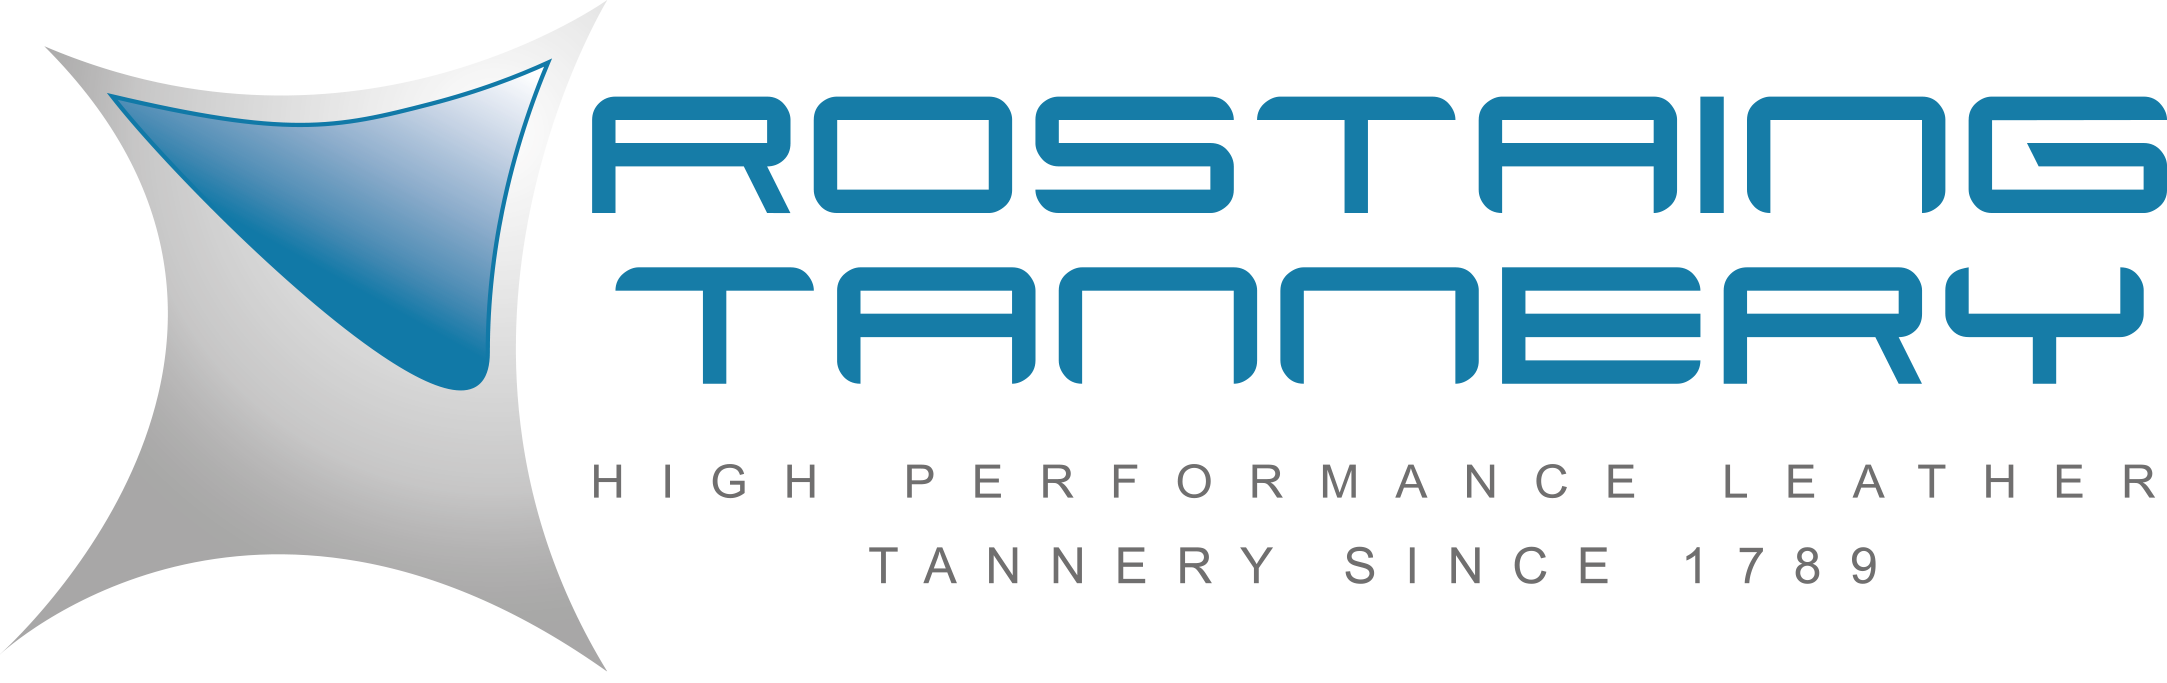 ROSTAING TANNERY